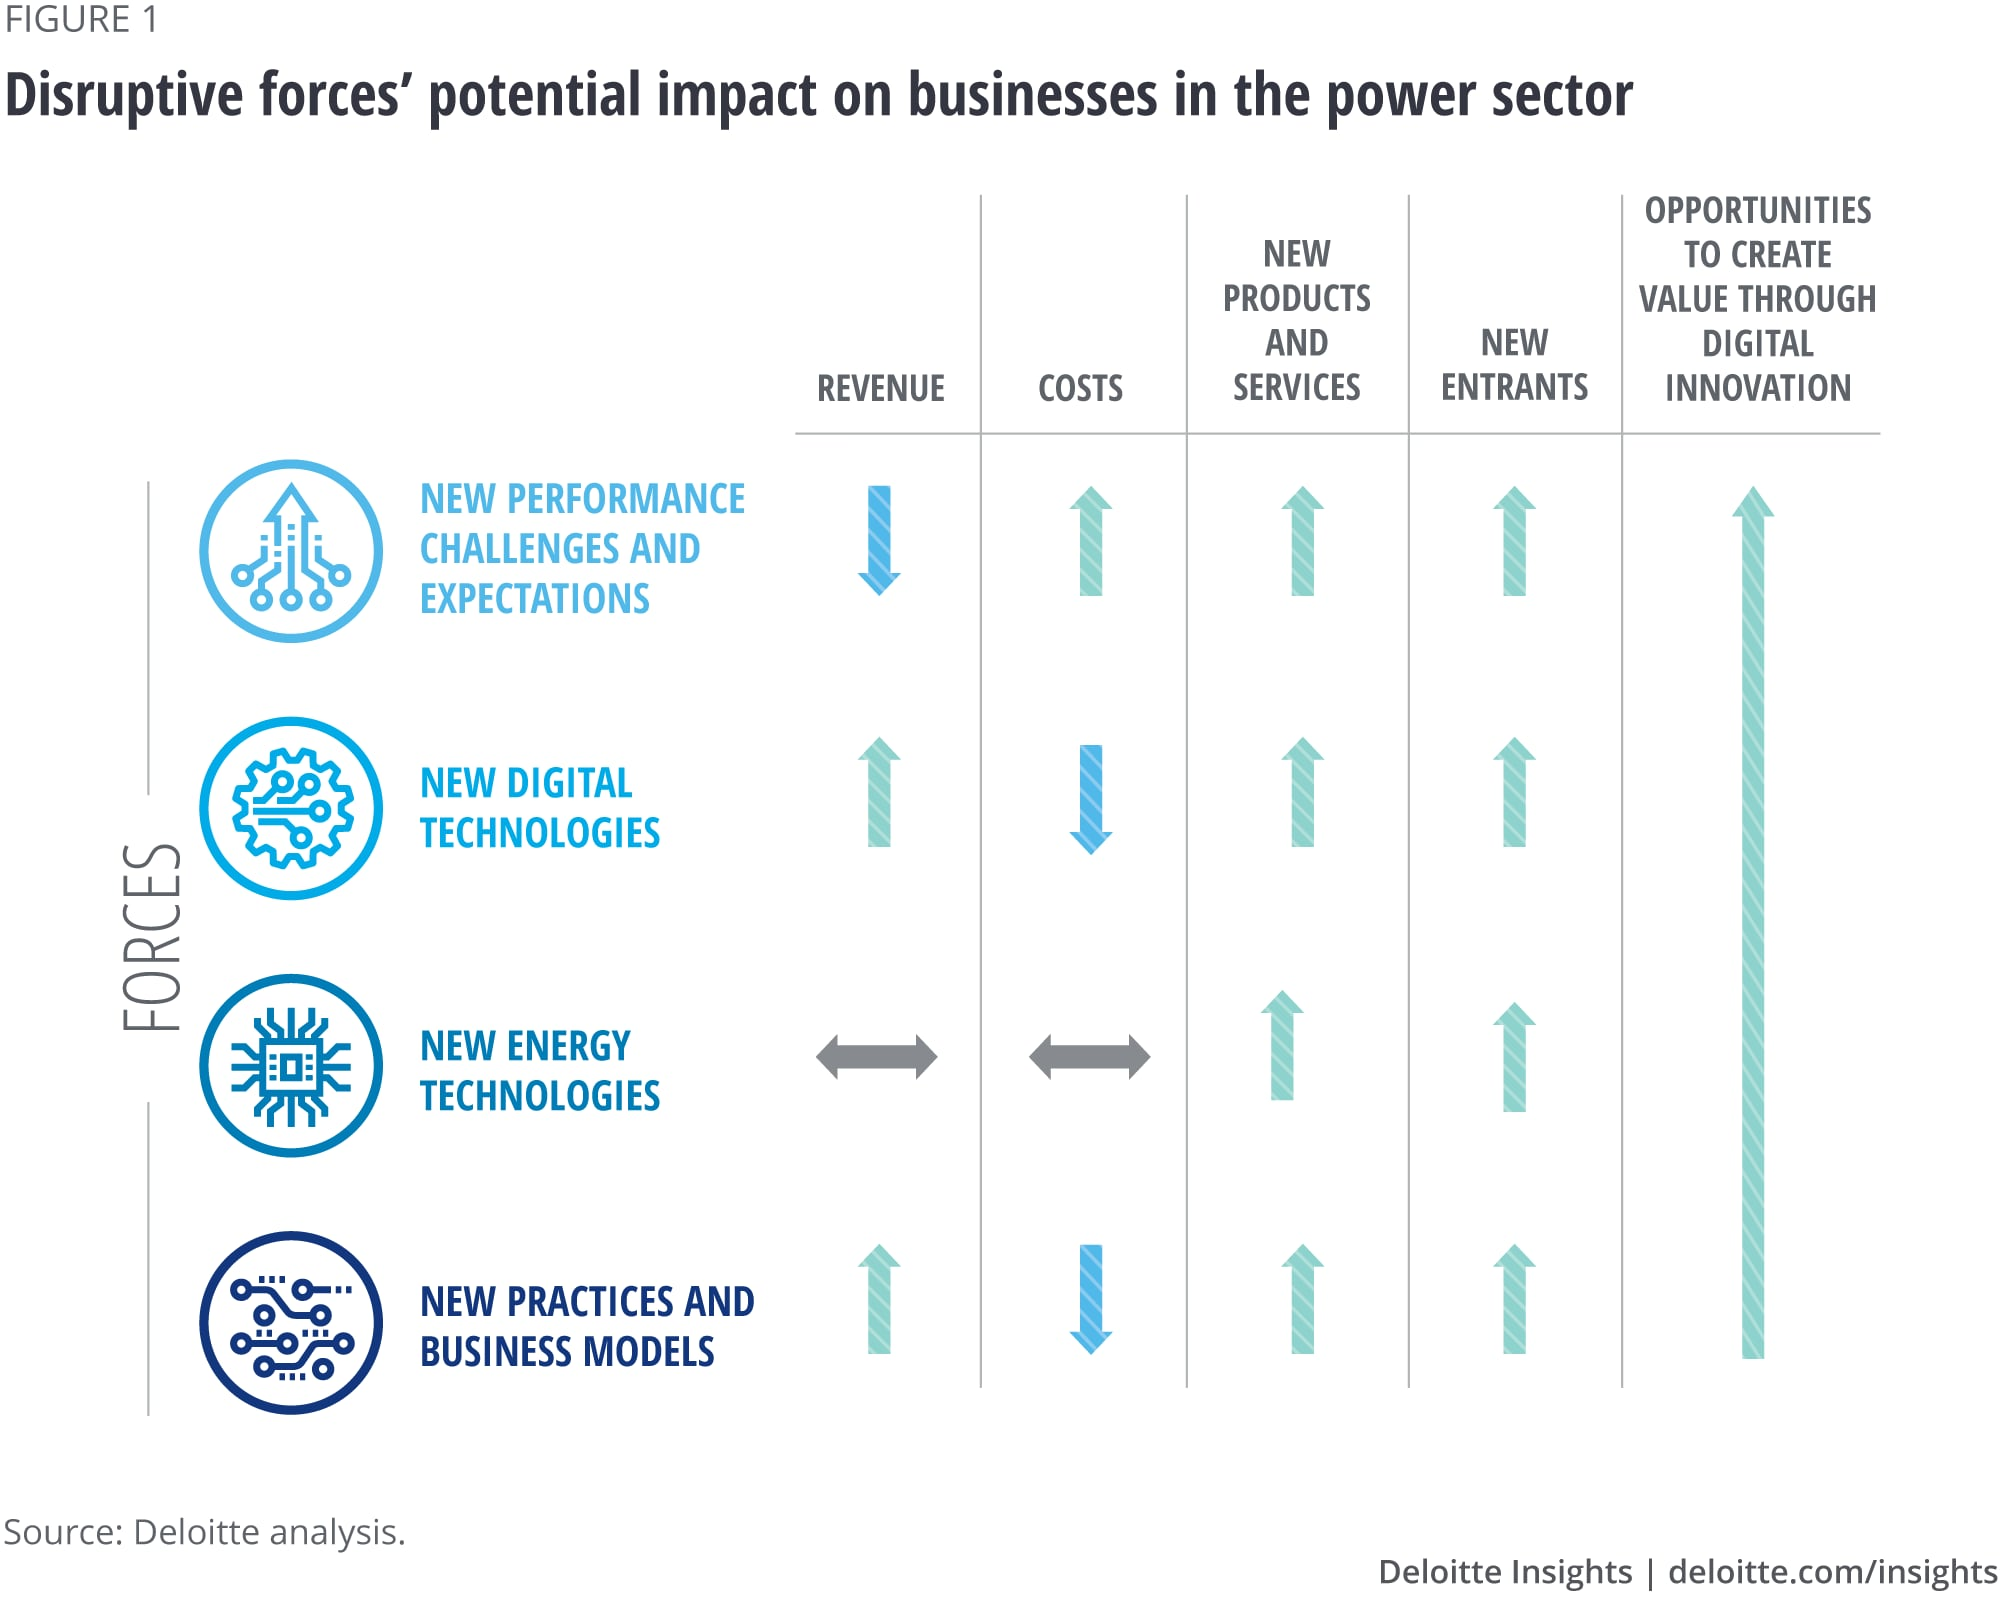 Disruptive forces' potential impact on businesses in the power sector